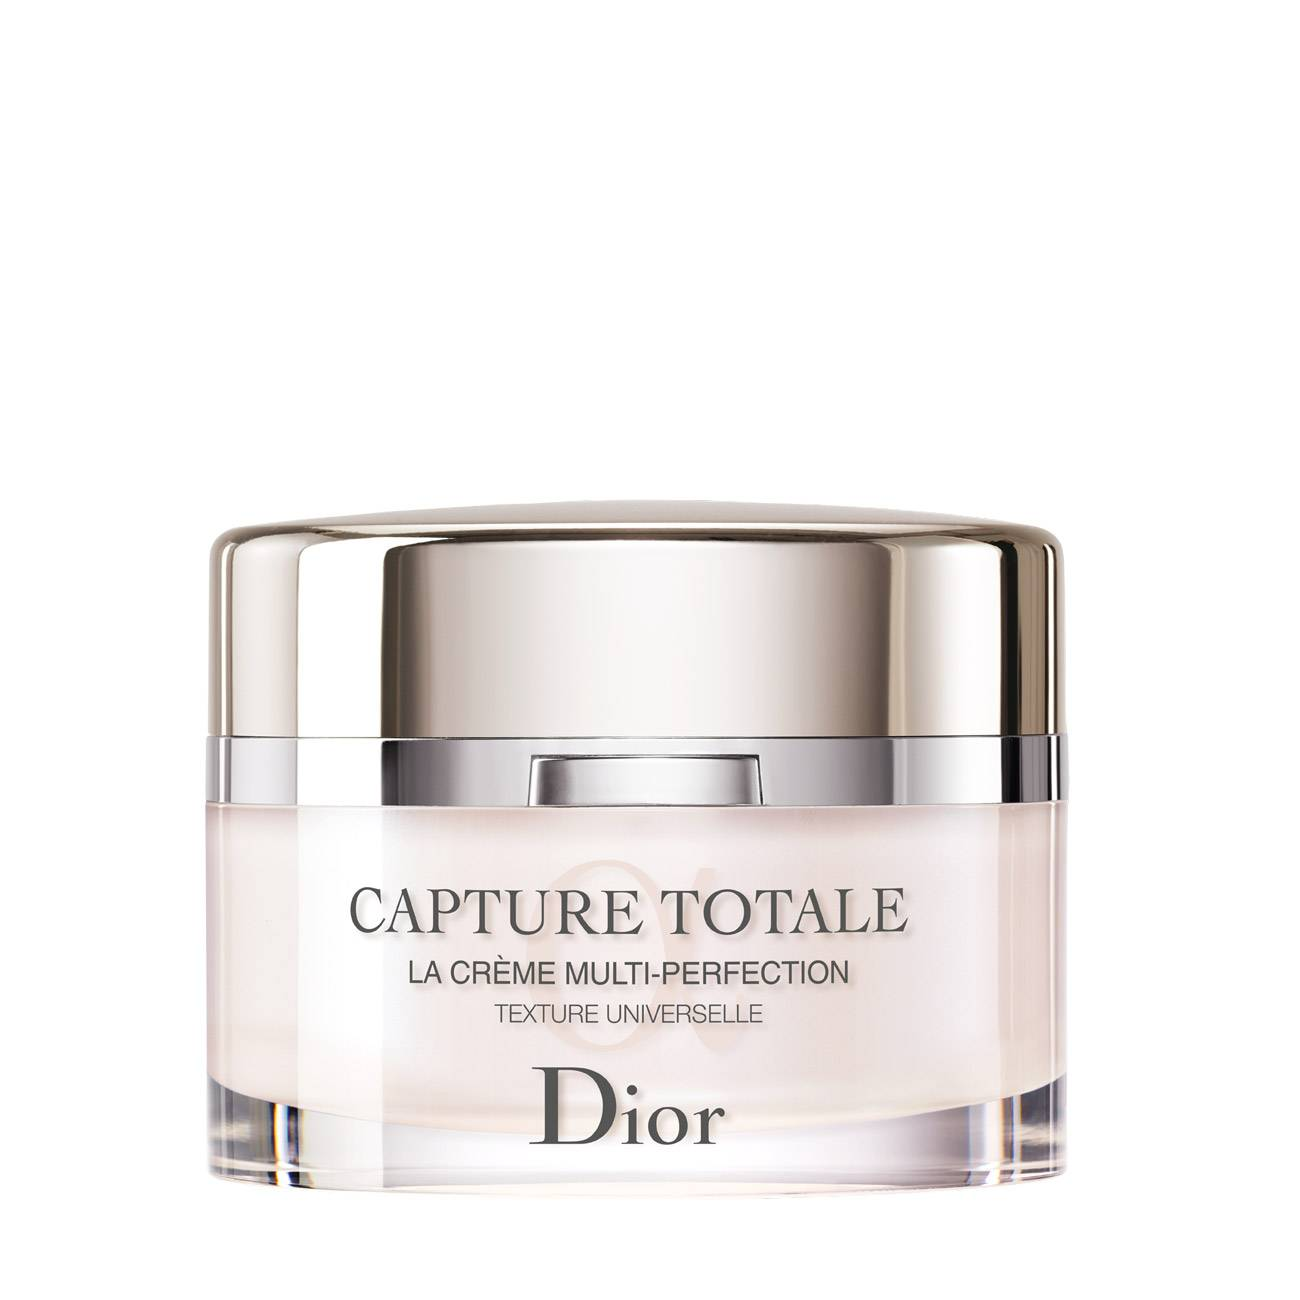 CAPTURE TOTALE UNIVERSAL CREAM 60 Ml